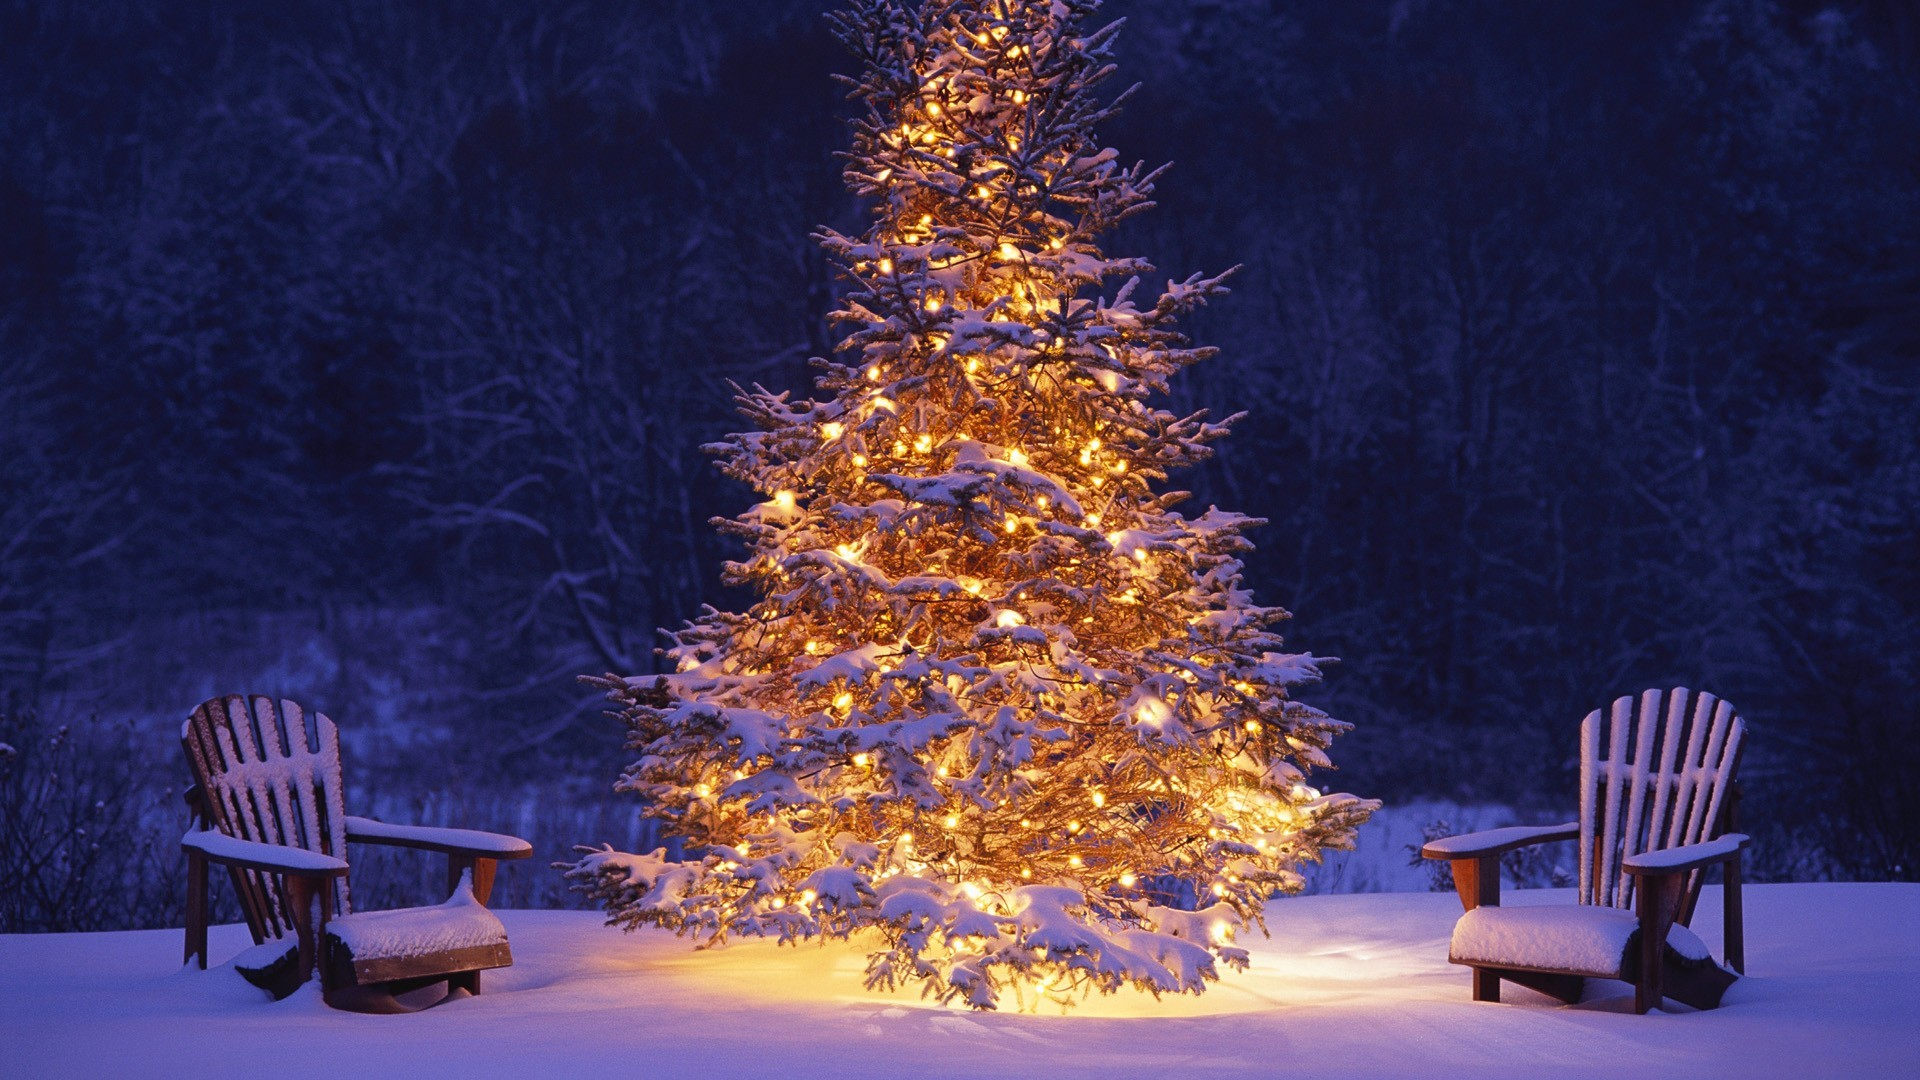 Beautiful Christmas Tree in Winter HD Picture